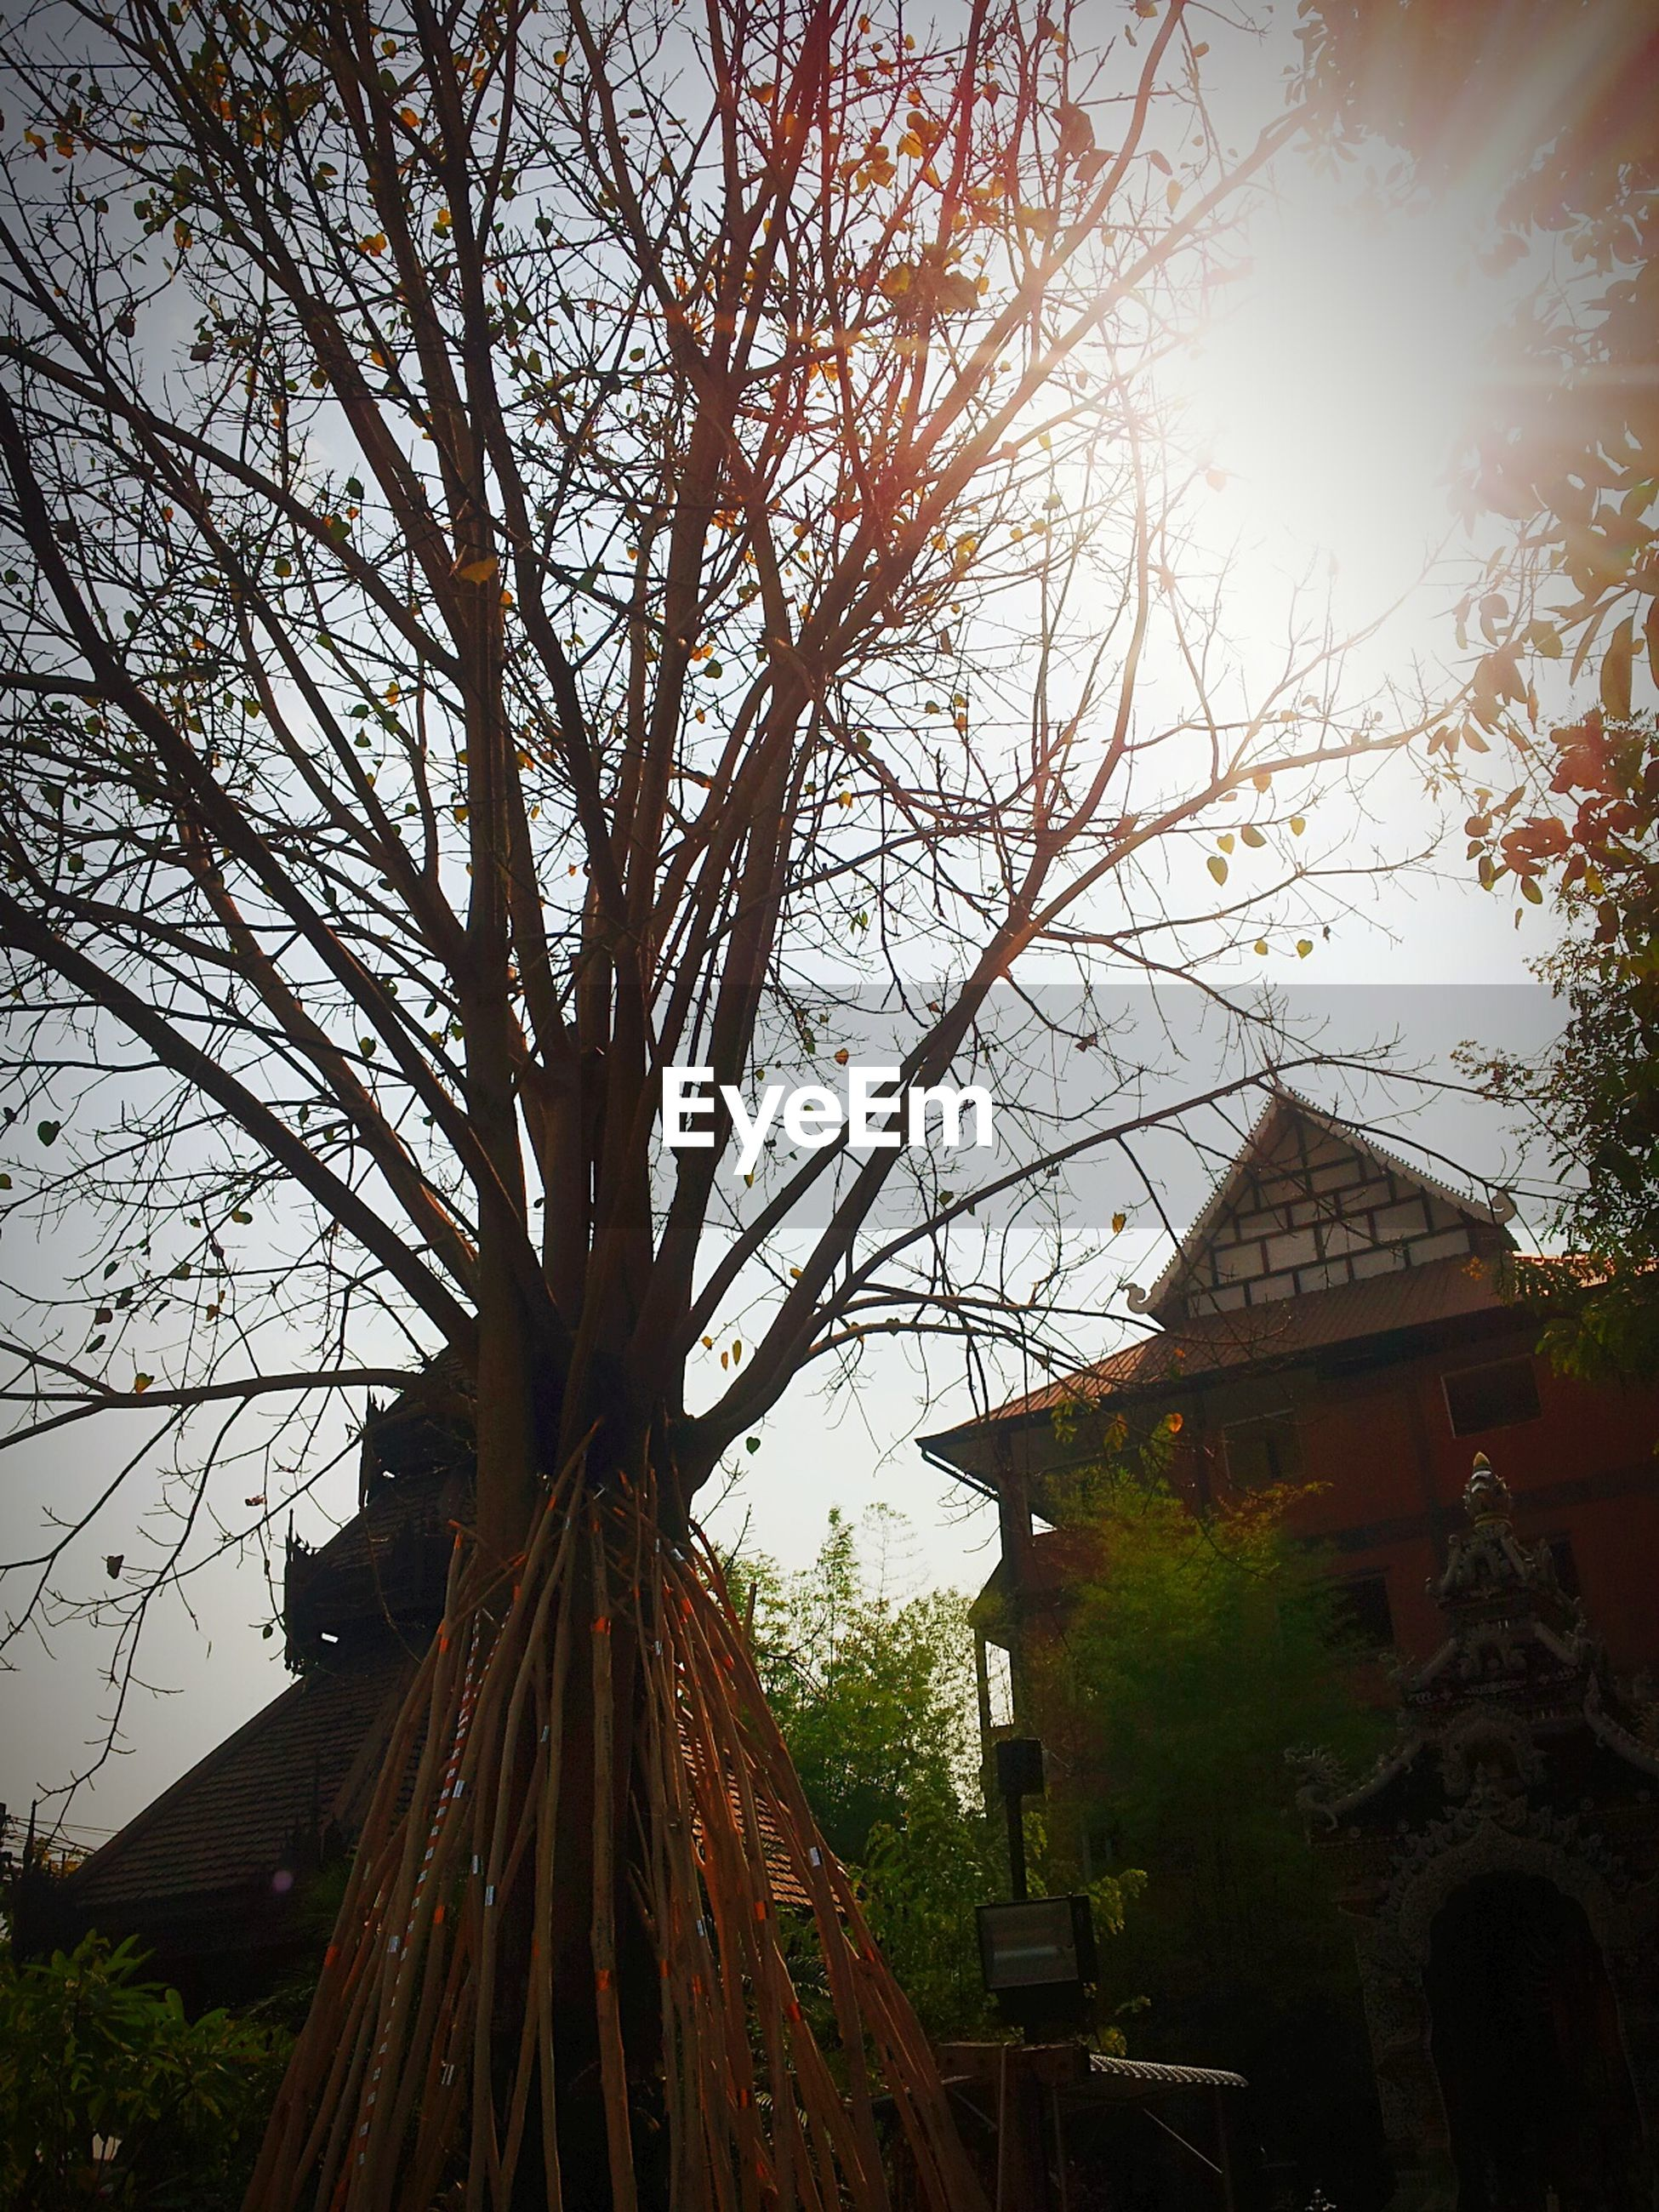 architecture, building exterior, built structure, tree, low angle view, house, sunlight, sun, sky, sunbeam, bare tree, branch, residential structure, lens flare, outdoors, residential building, growth, nature, no people, sunset